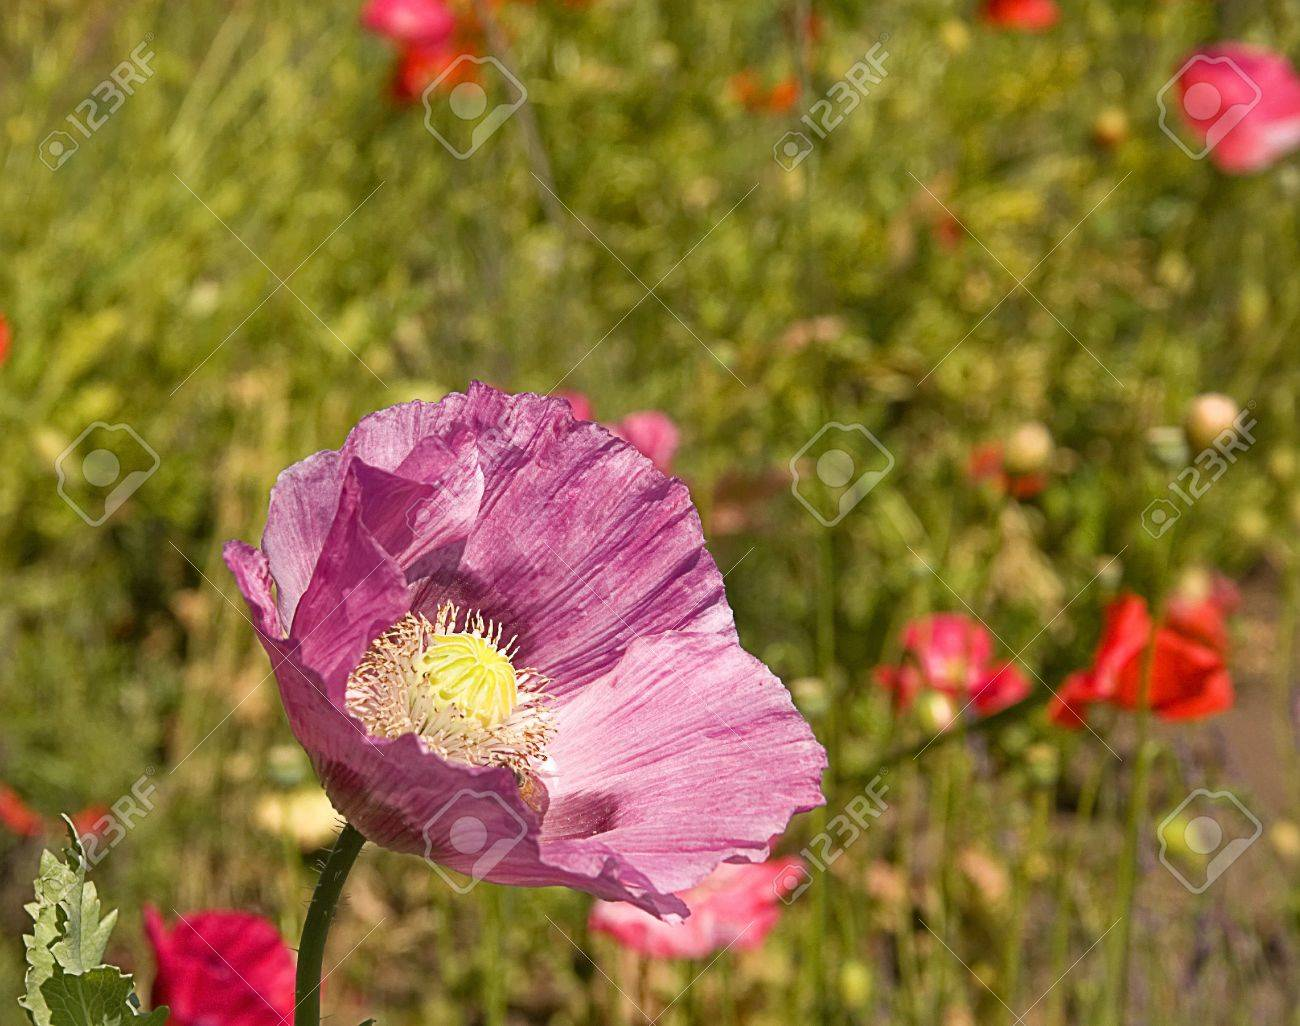 This Photo Features A Purple Colored Poppy With Its Paper Like